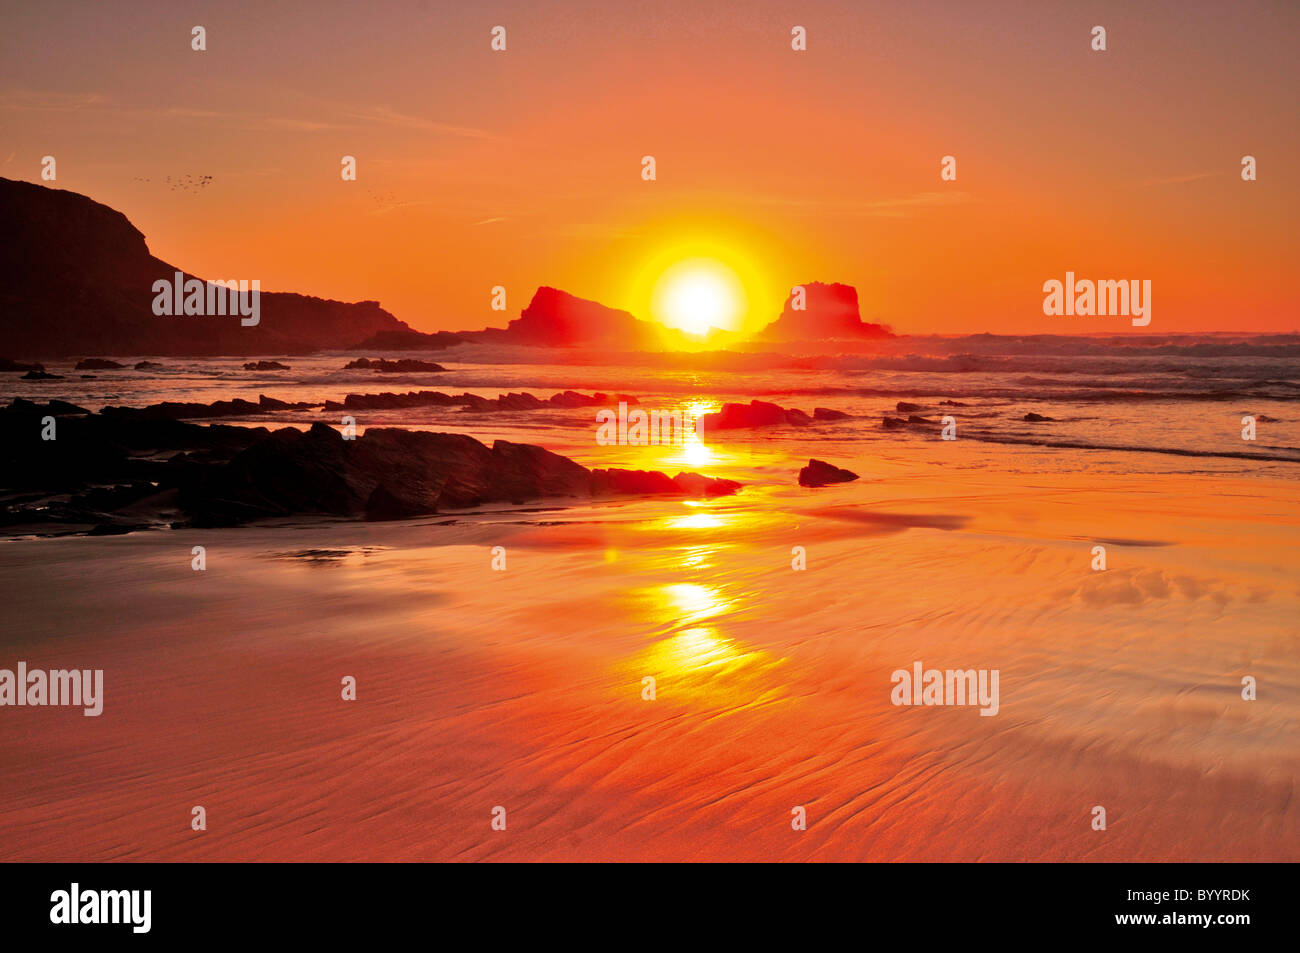 Portugal, Algarve: Sundown at Praia do Amado - Stock Image